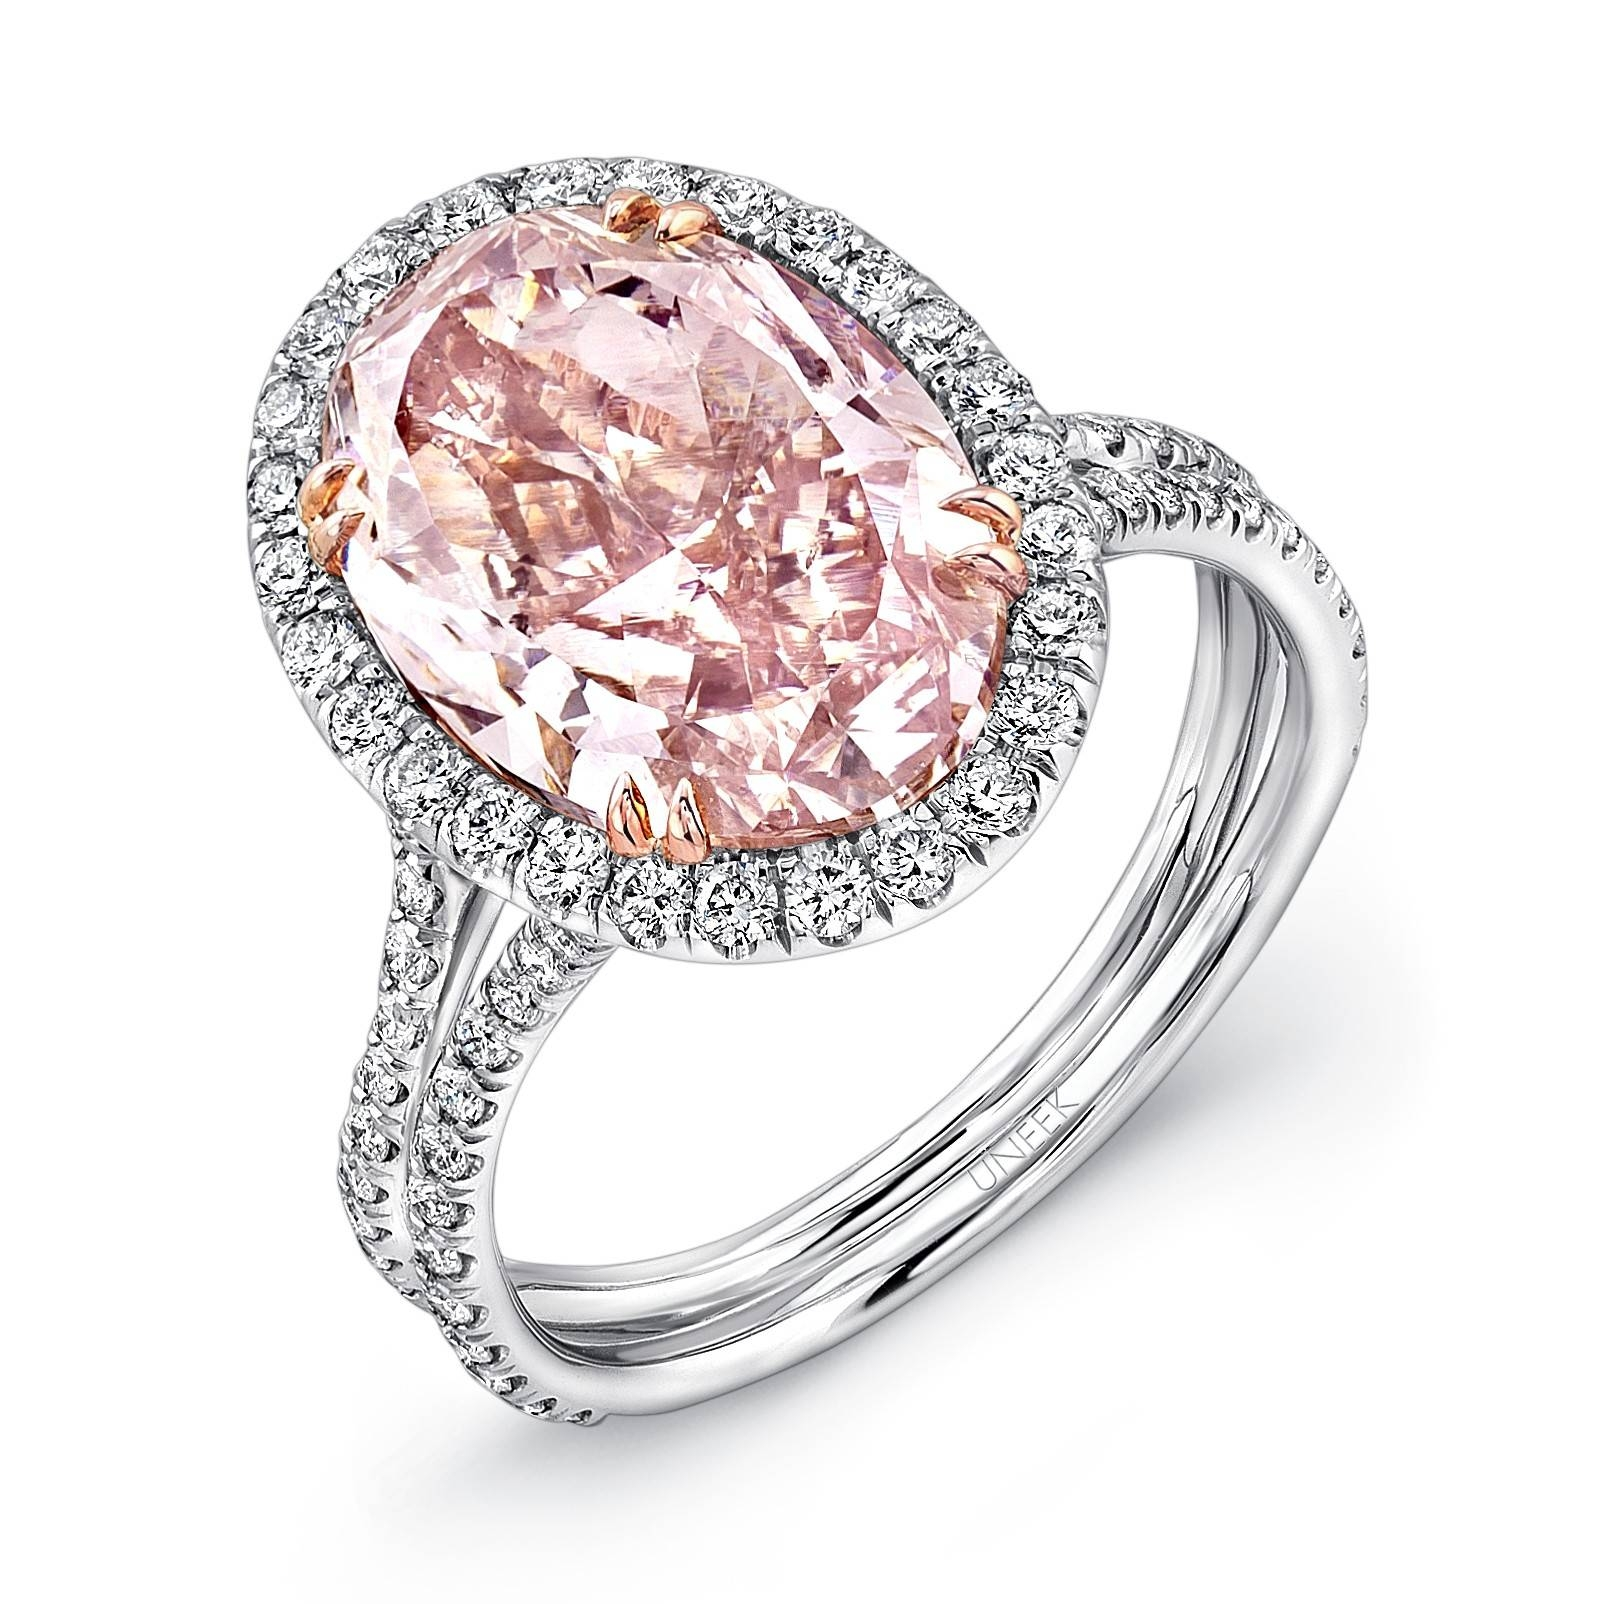 Uneek Oval Fancy Brown Pink Diamond Halo Engagement Ring With Pertaining To Colorful Diamond Engagement Rings (View 13 of 15)